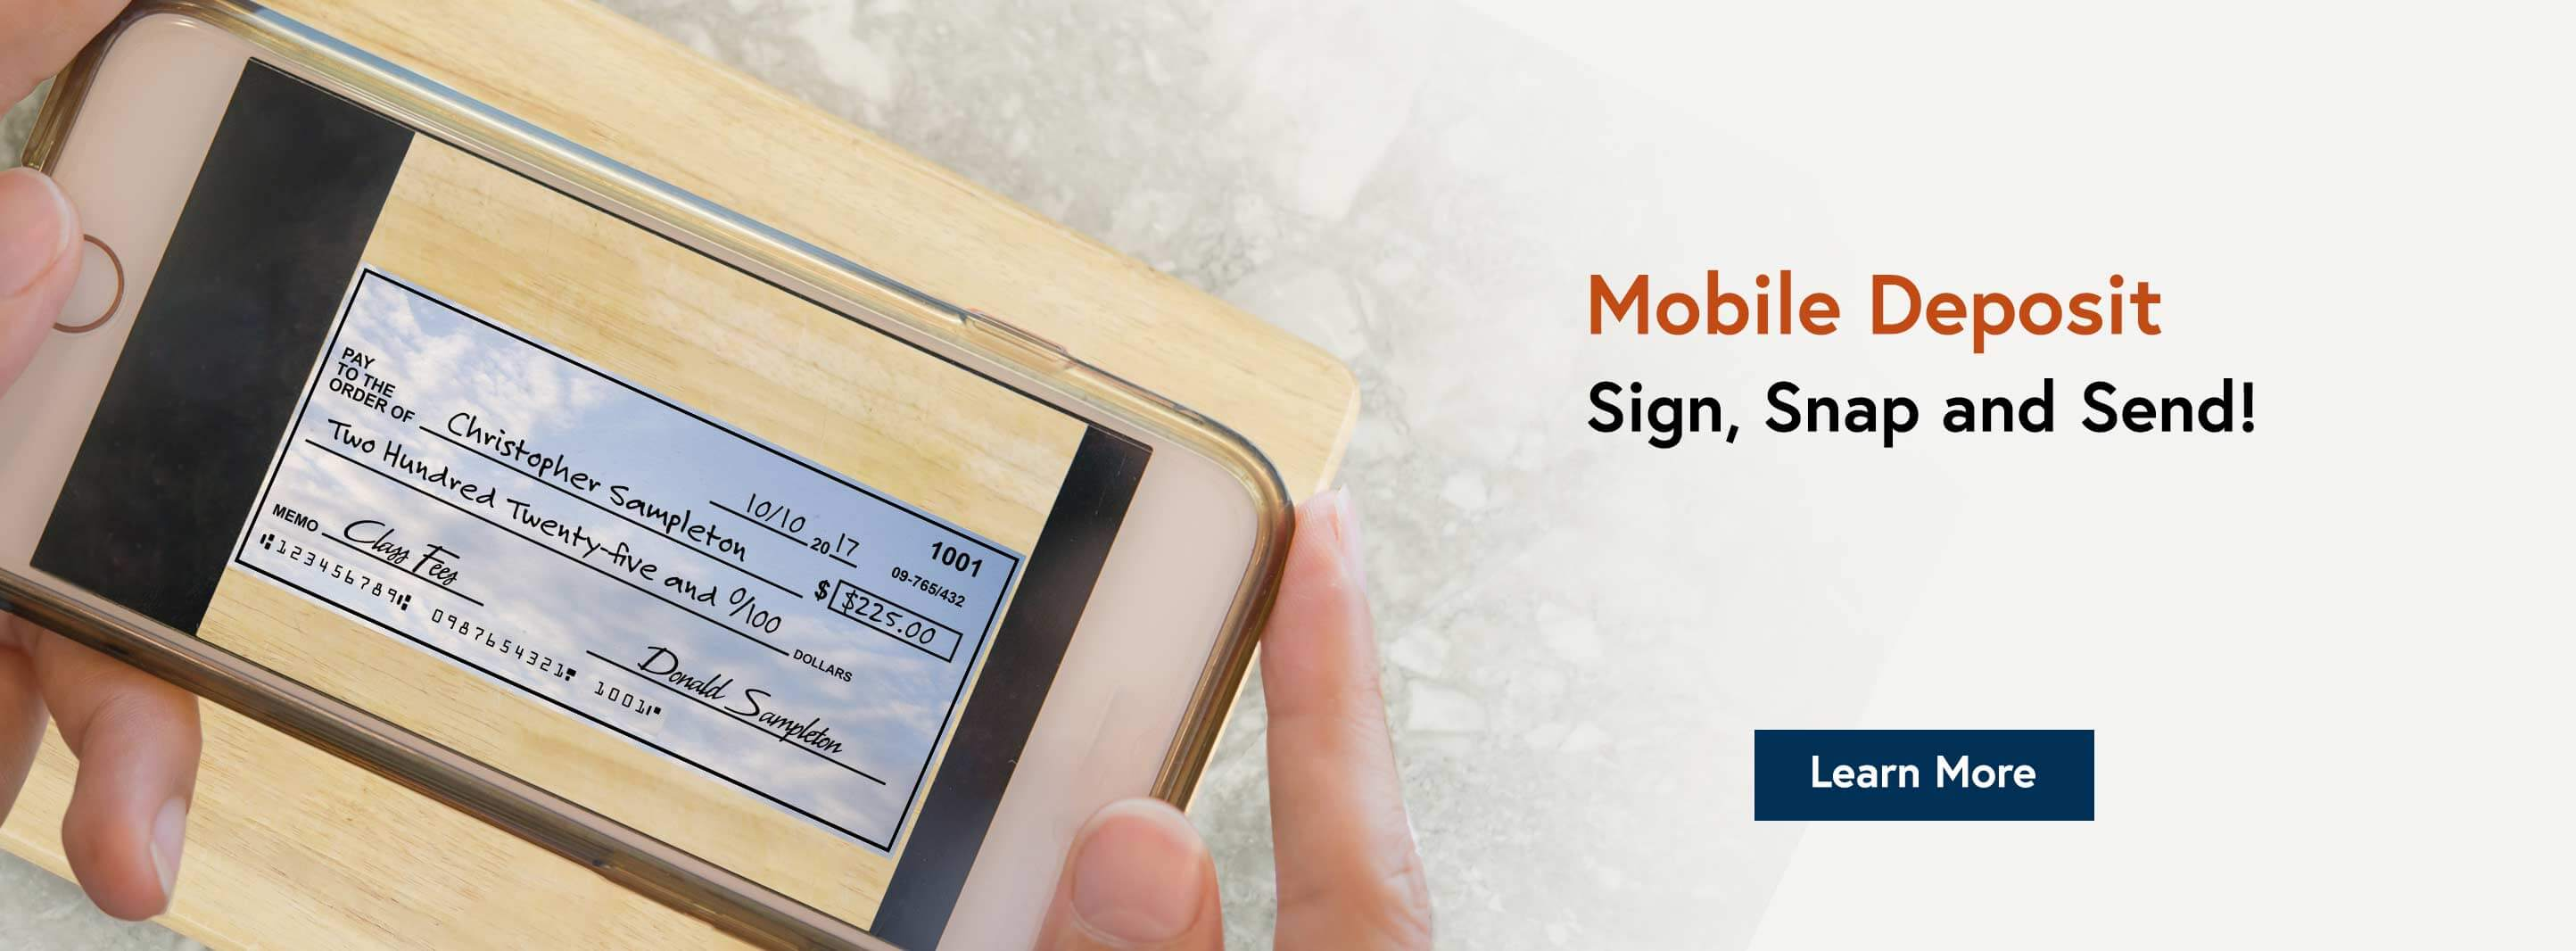 Mobile Deposit. Sign, Snap and Send! Learn More.